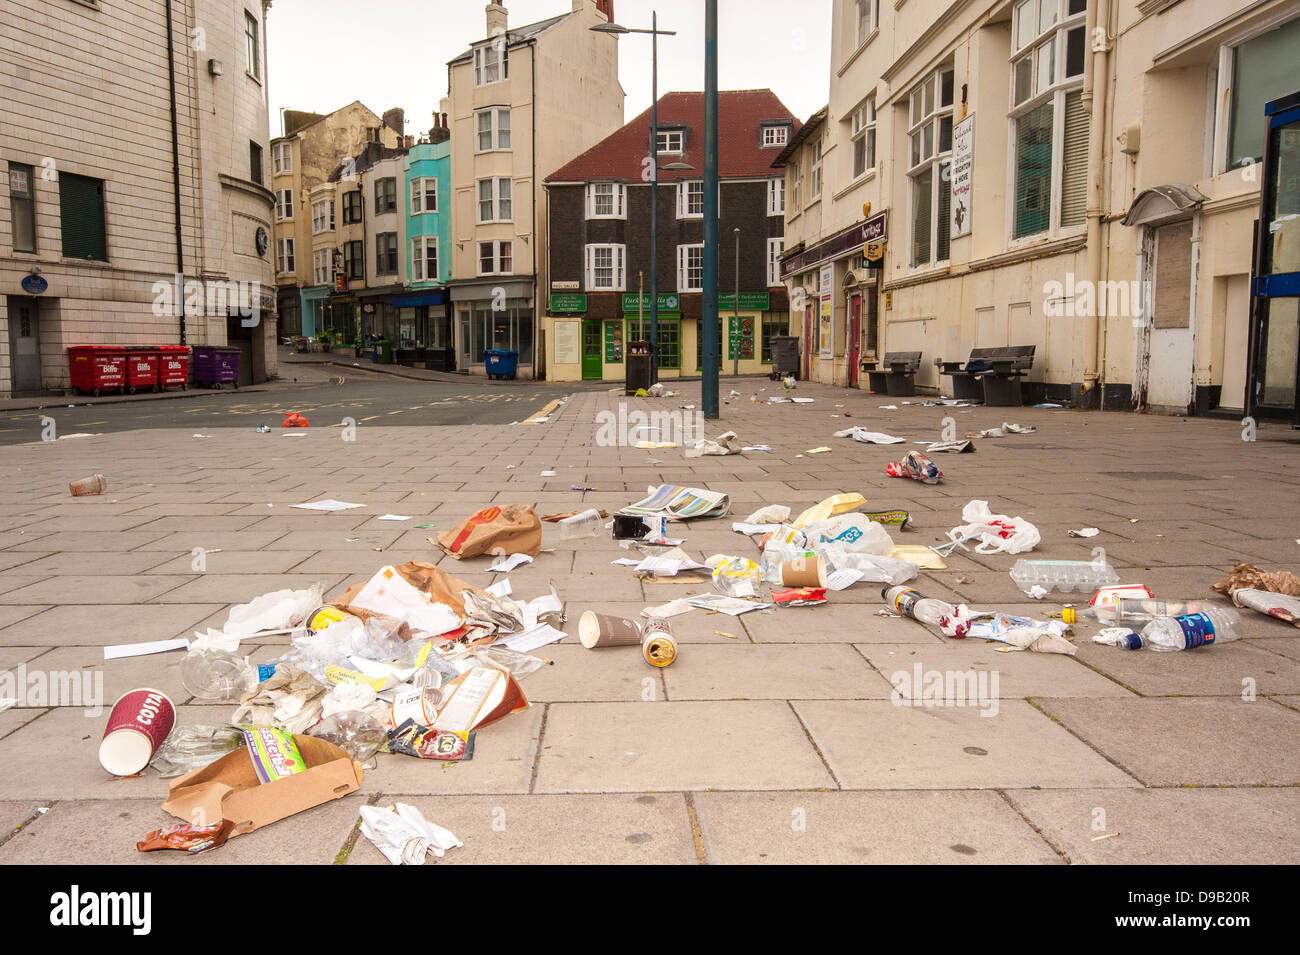 Brighton, UK. 17th June, 2013. Sin Bin City -Rubbish strewn streets in Brighton.  The city's cleaners are on - Stock Image